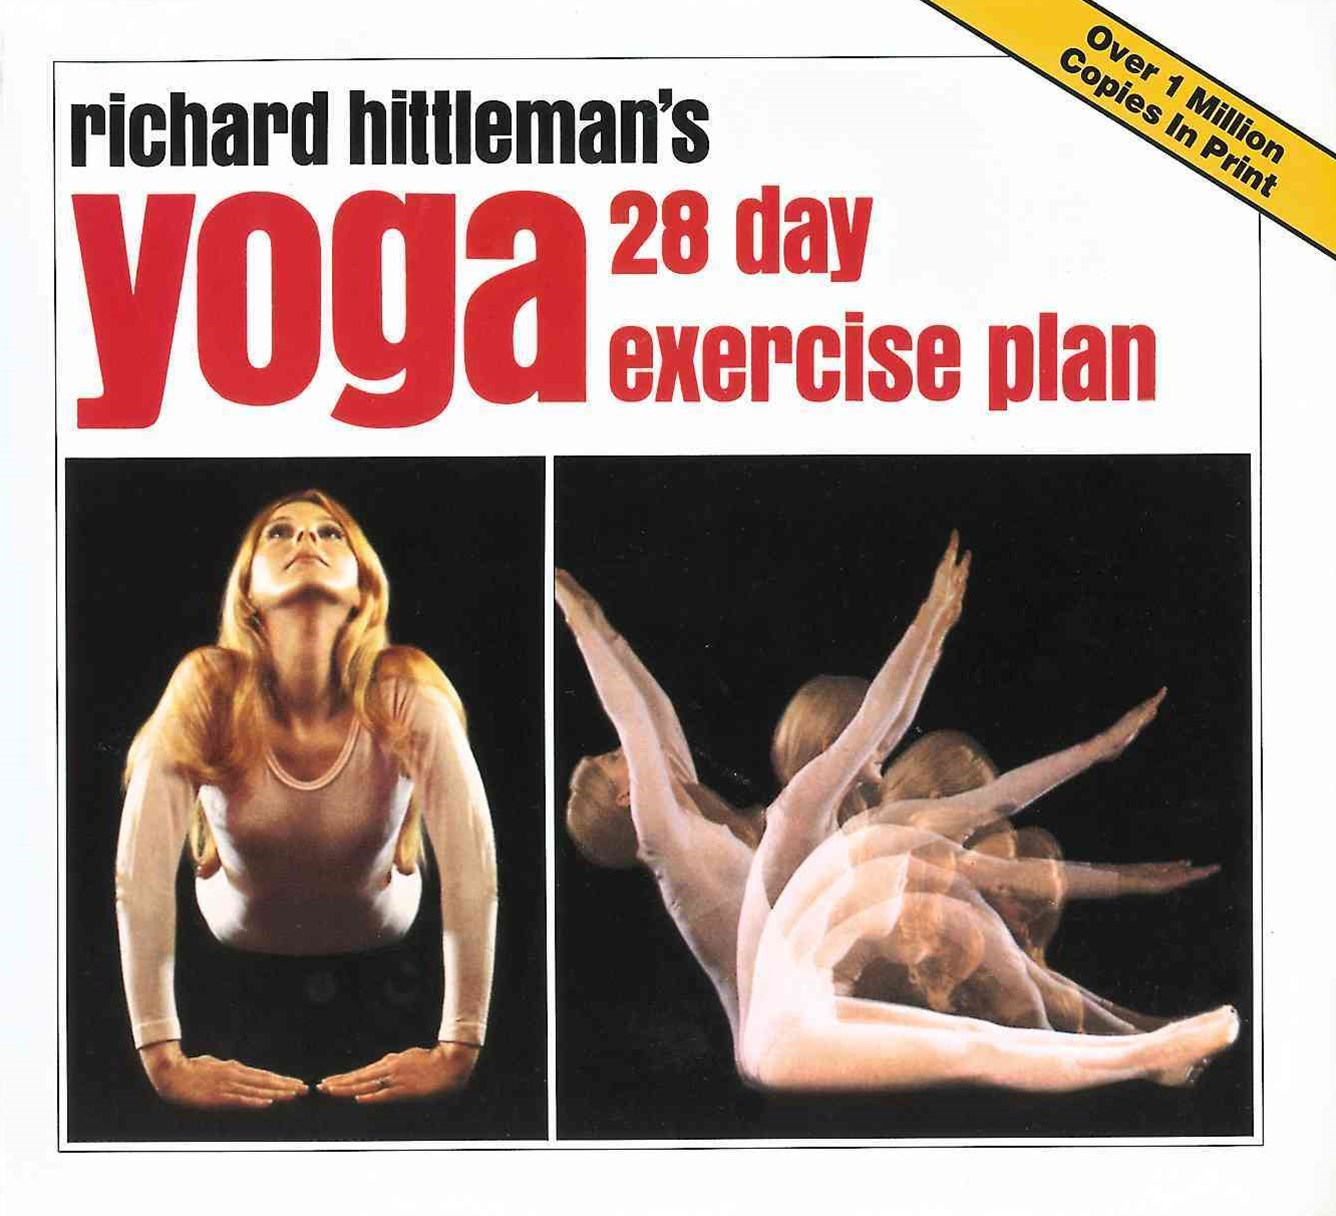 Richard Hittleman's Yoga 28 Day Exercise Plan